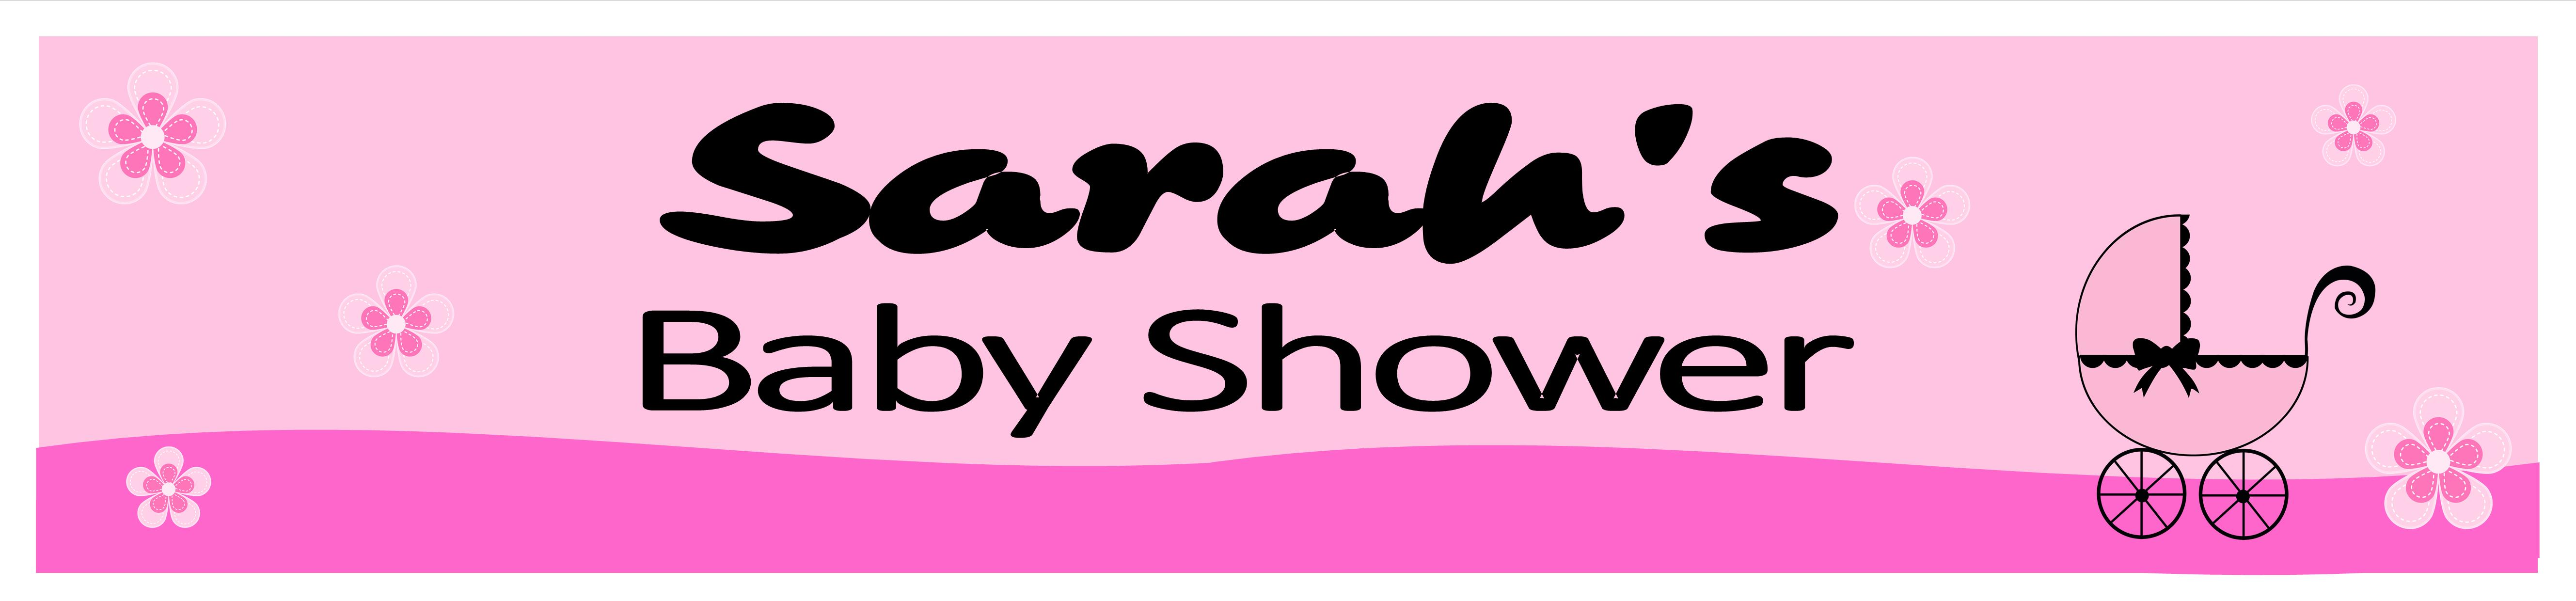 personalised pink baby shower banner design 1